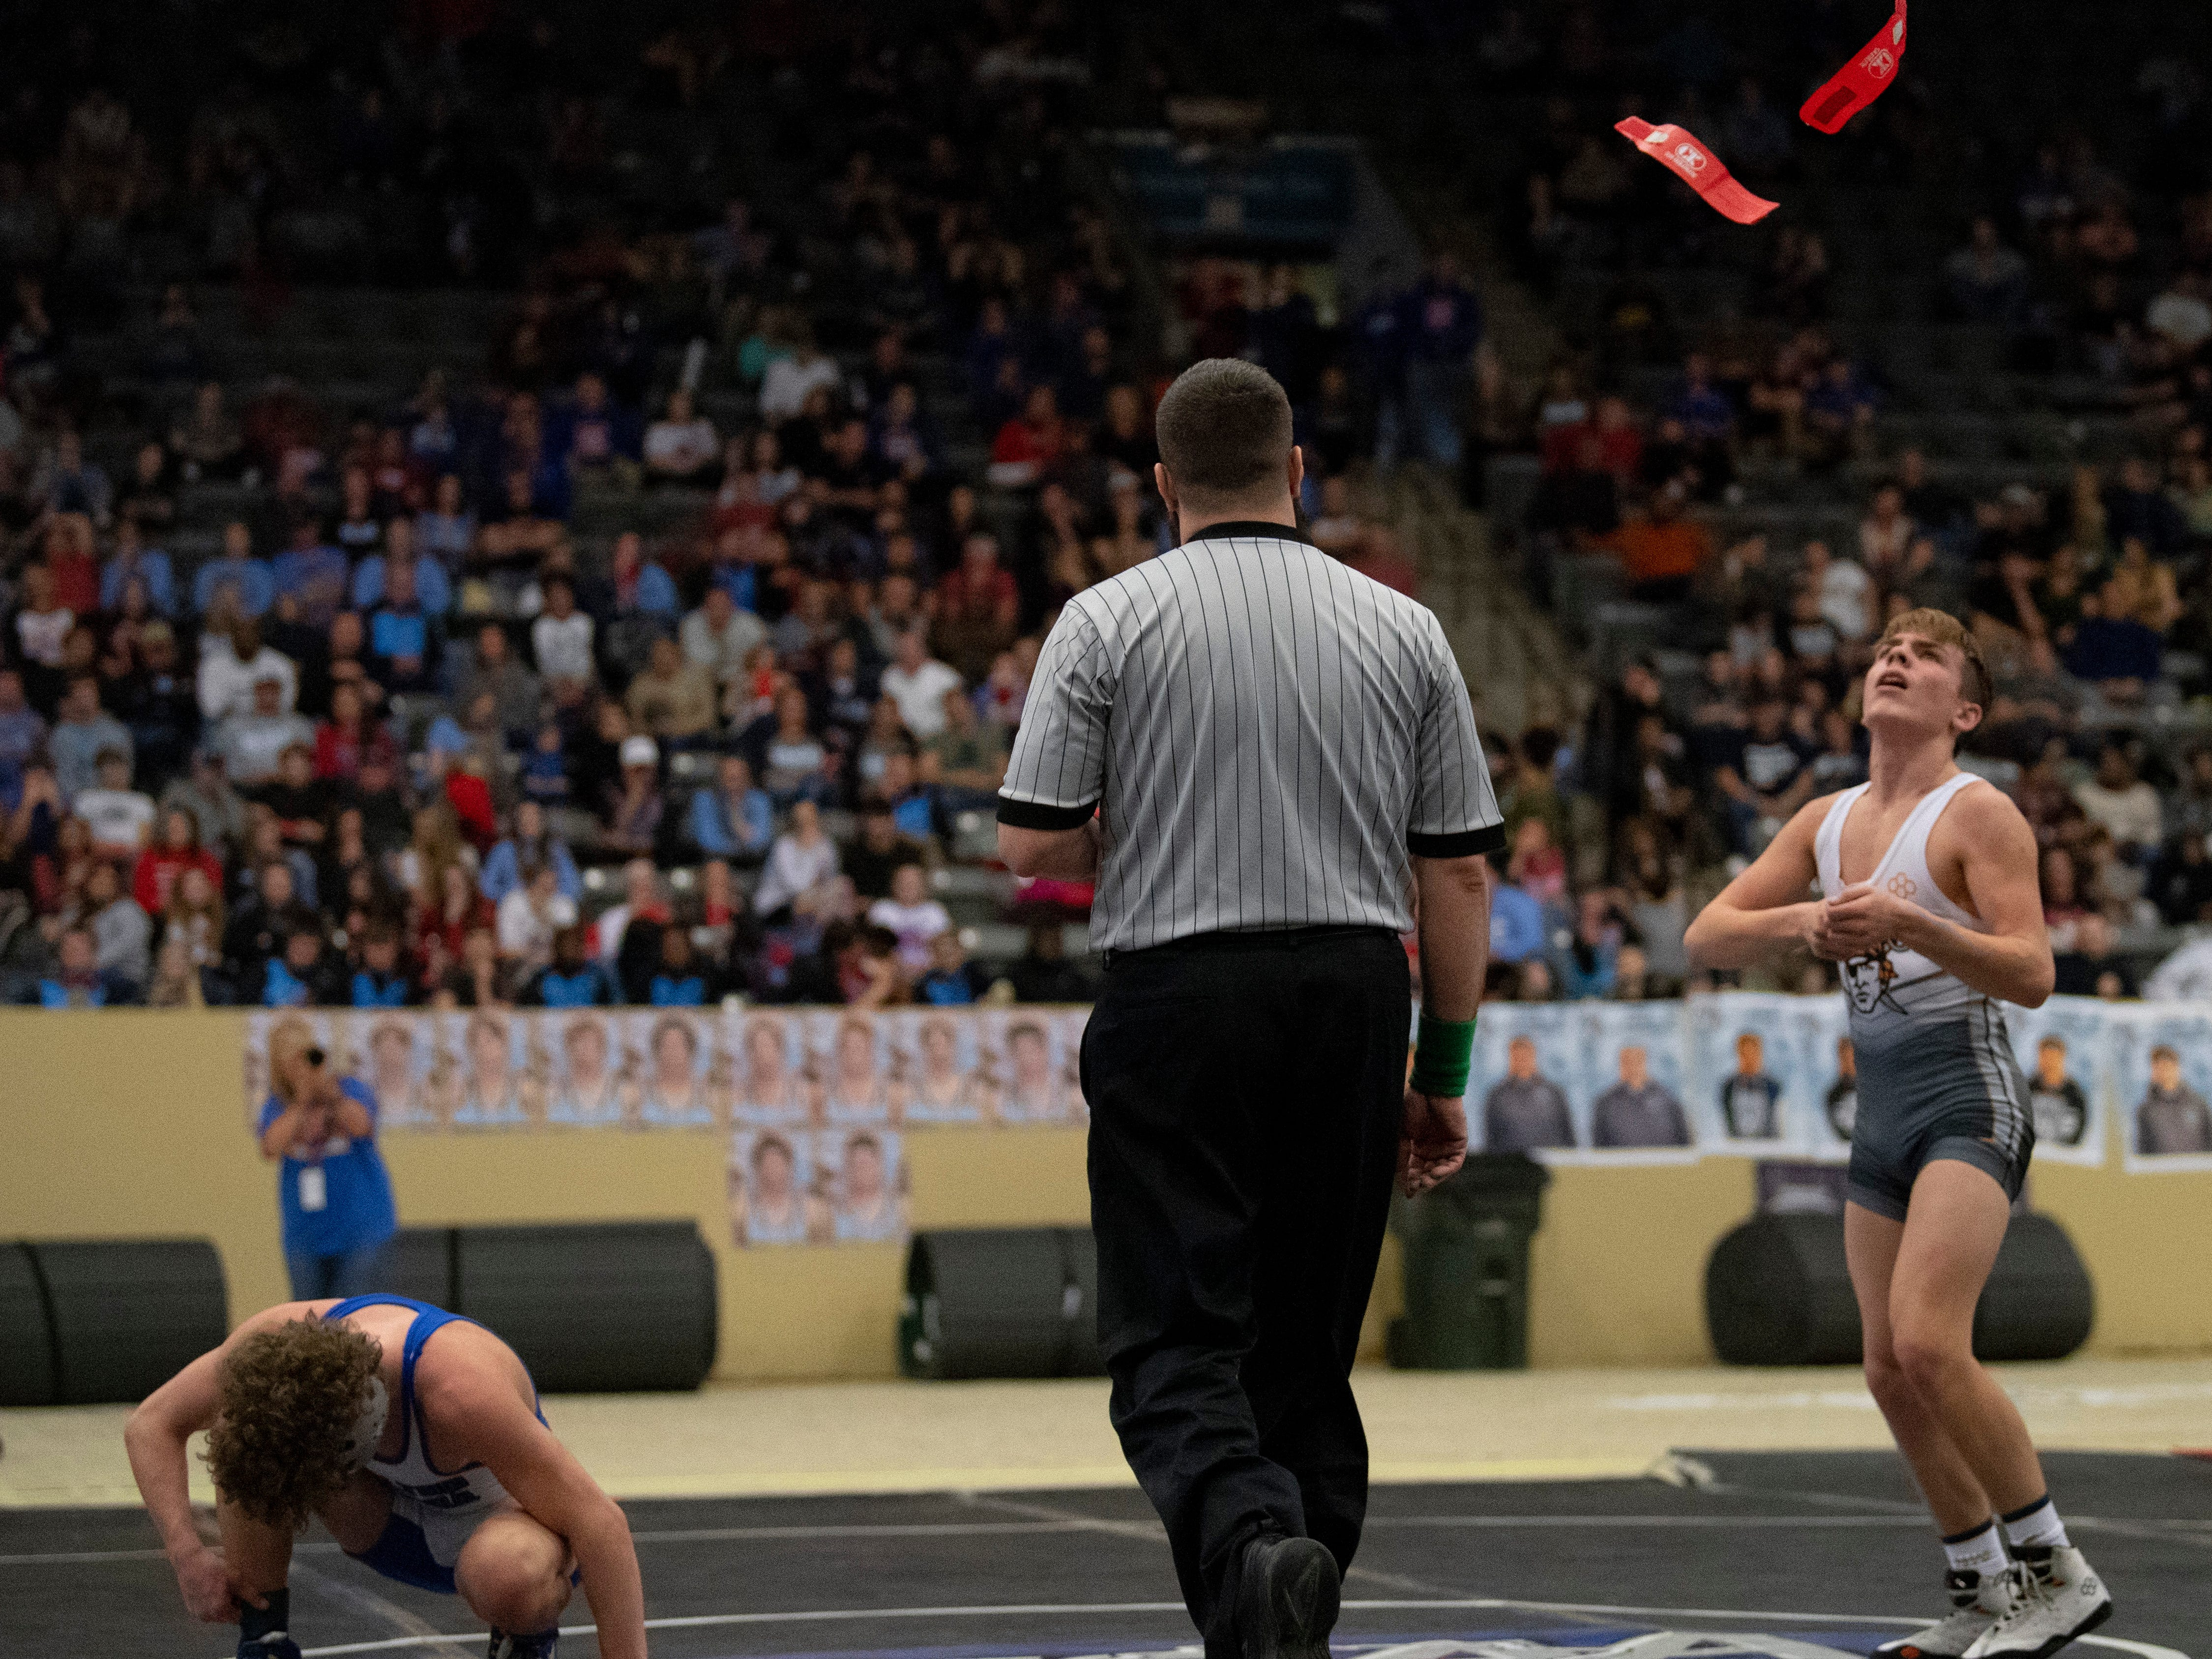 Ryle's Cole Thomas tosses his anklets into the air after defeating Walton-Verona's Spencer Moore for the 106-pound championship by a tie-breaker 3-2 at the KHSAA State Wrestling Championships at the Alltech Arena in Lexington, Ky., Saturday night.